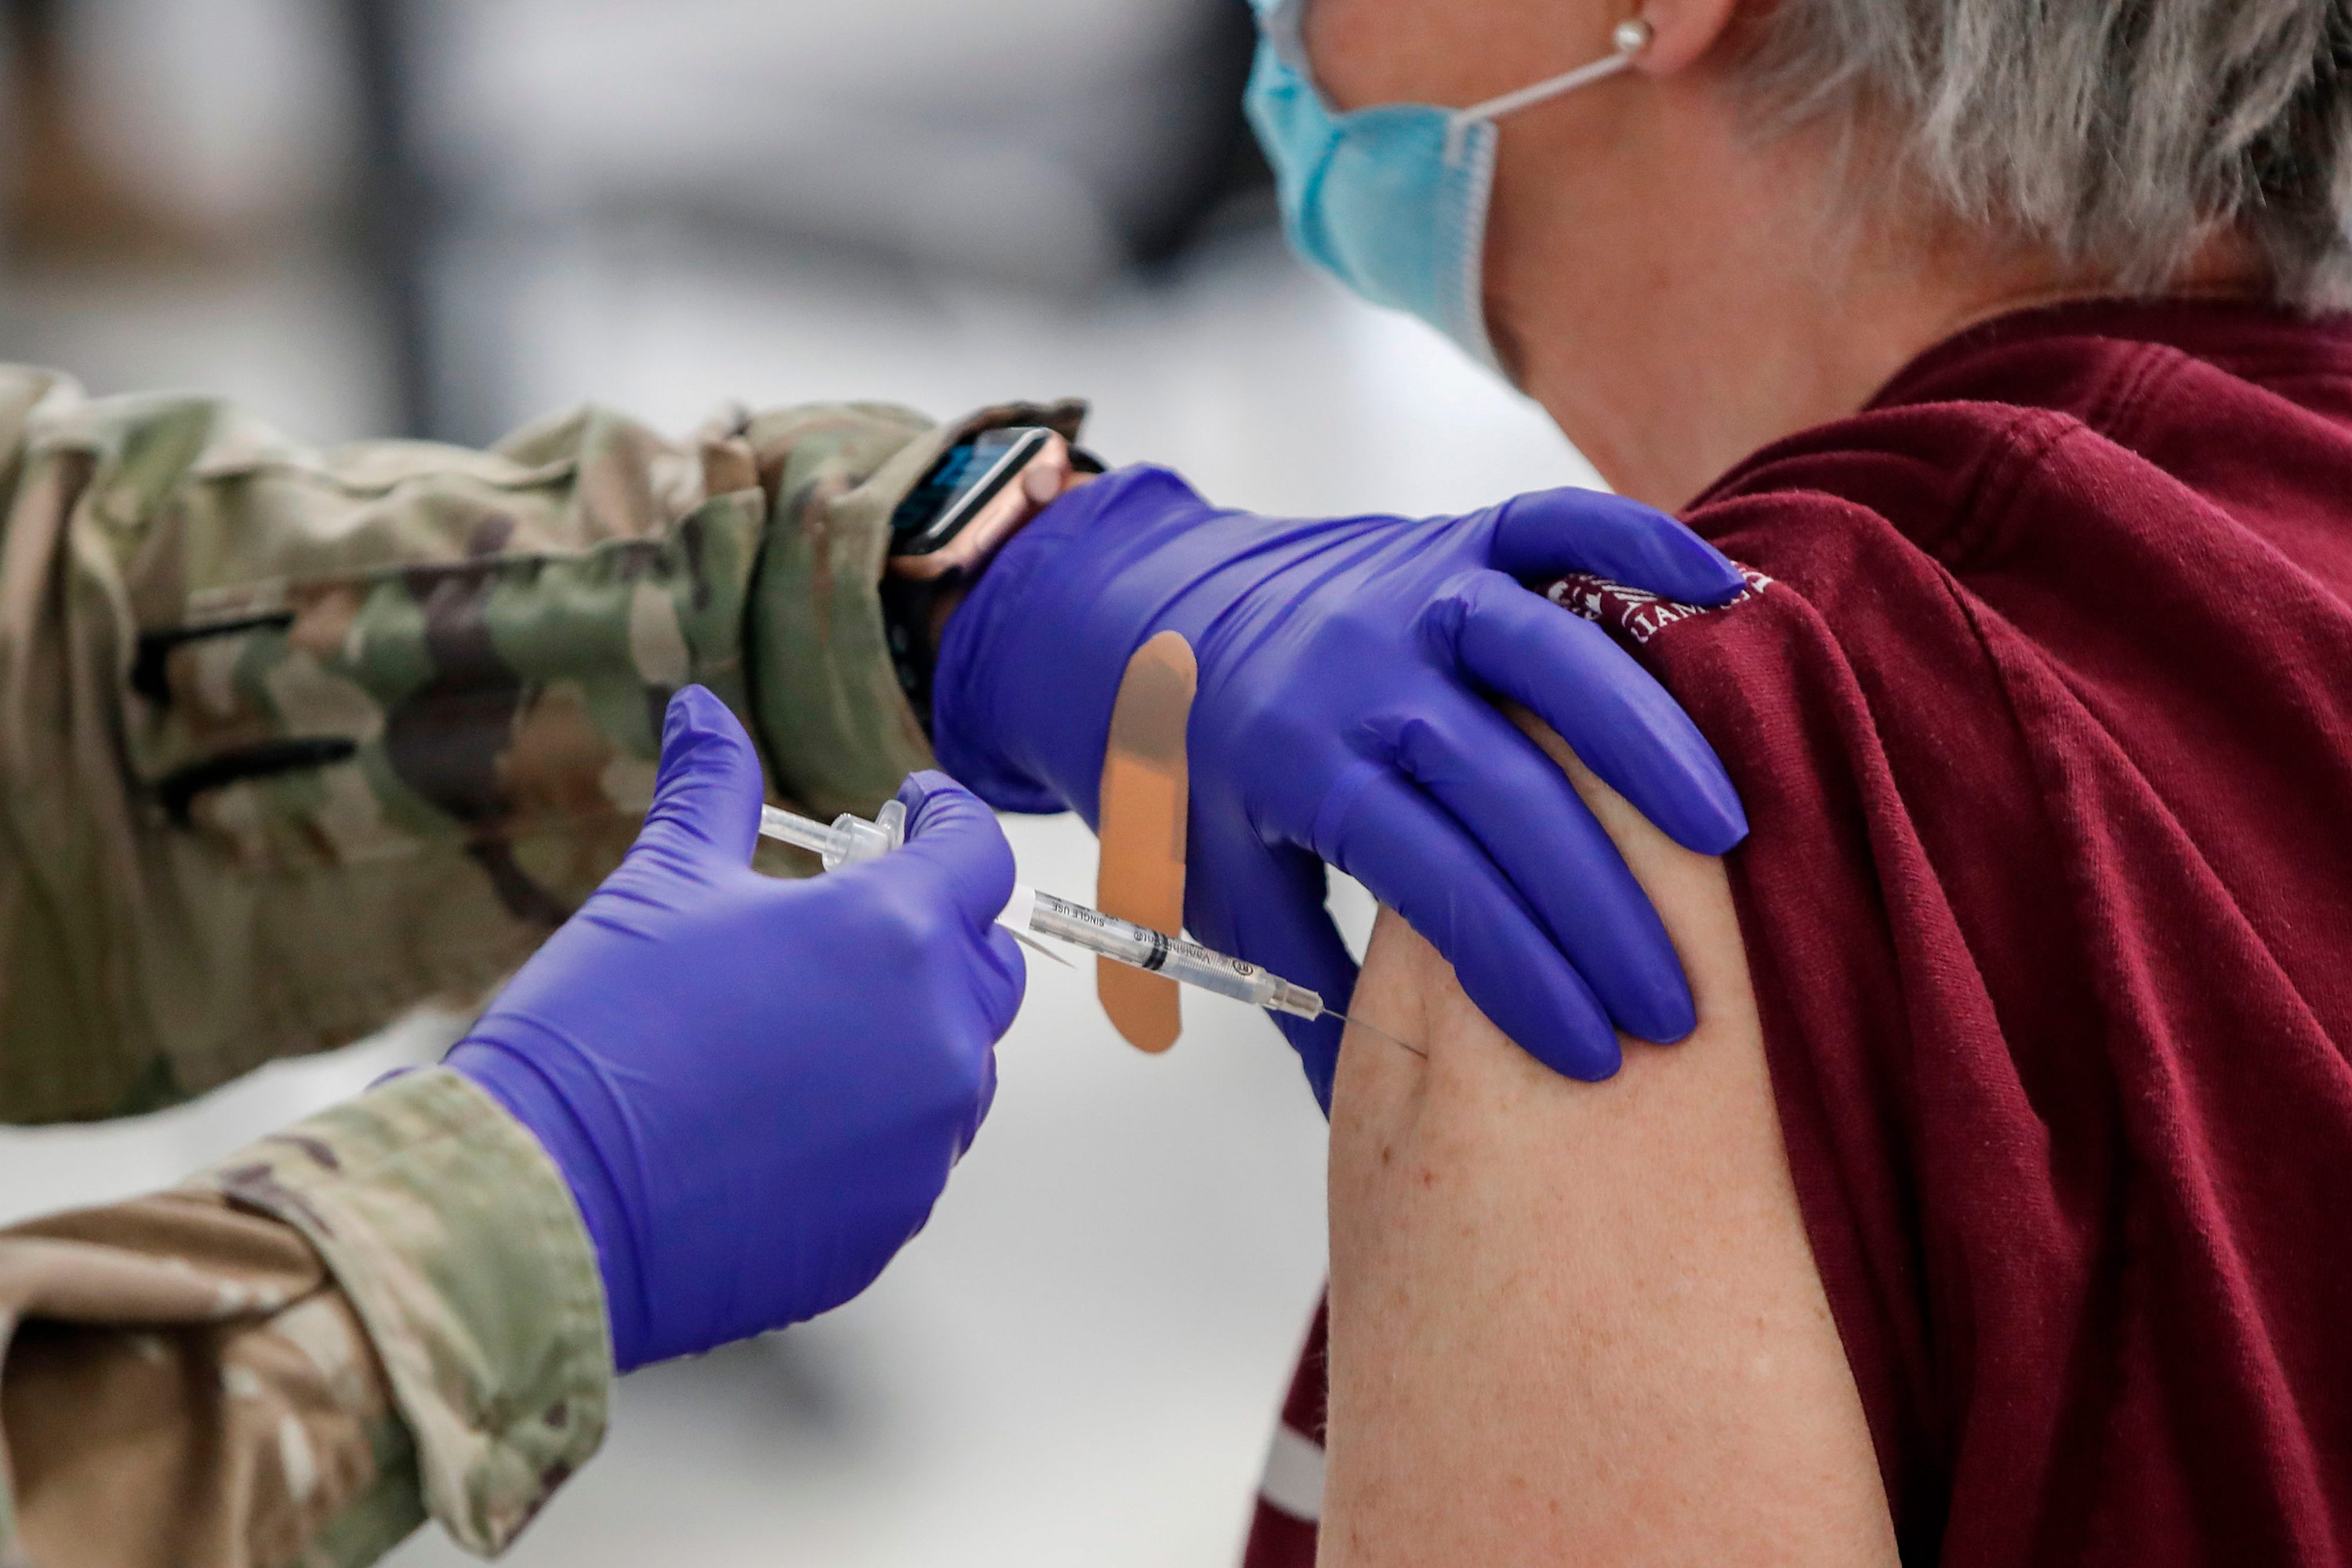 A woman receives a Pfizer Covid-19 vaccine at a vaccination center in River Grove, Illinois, on February 3.